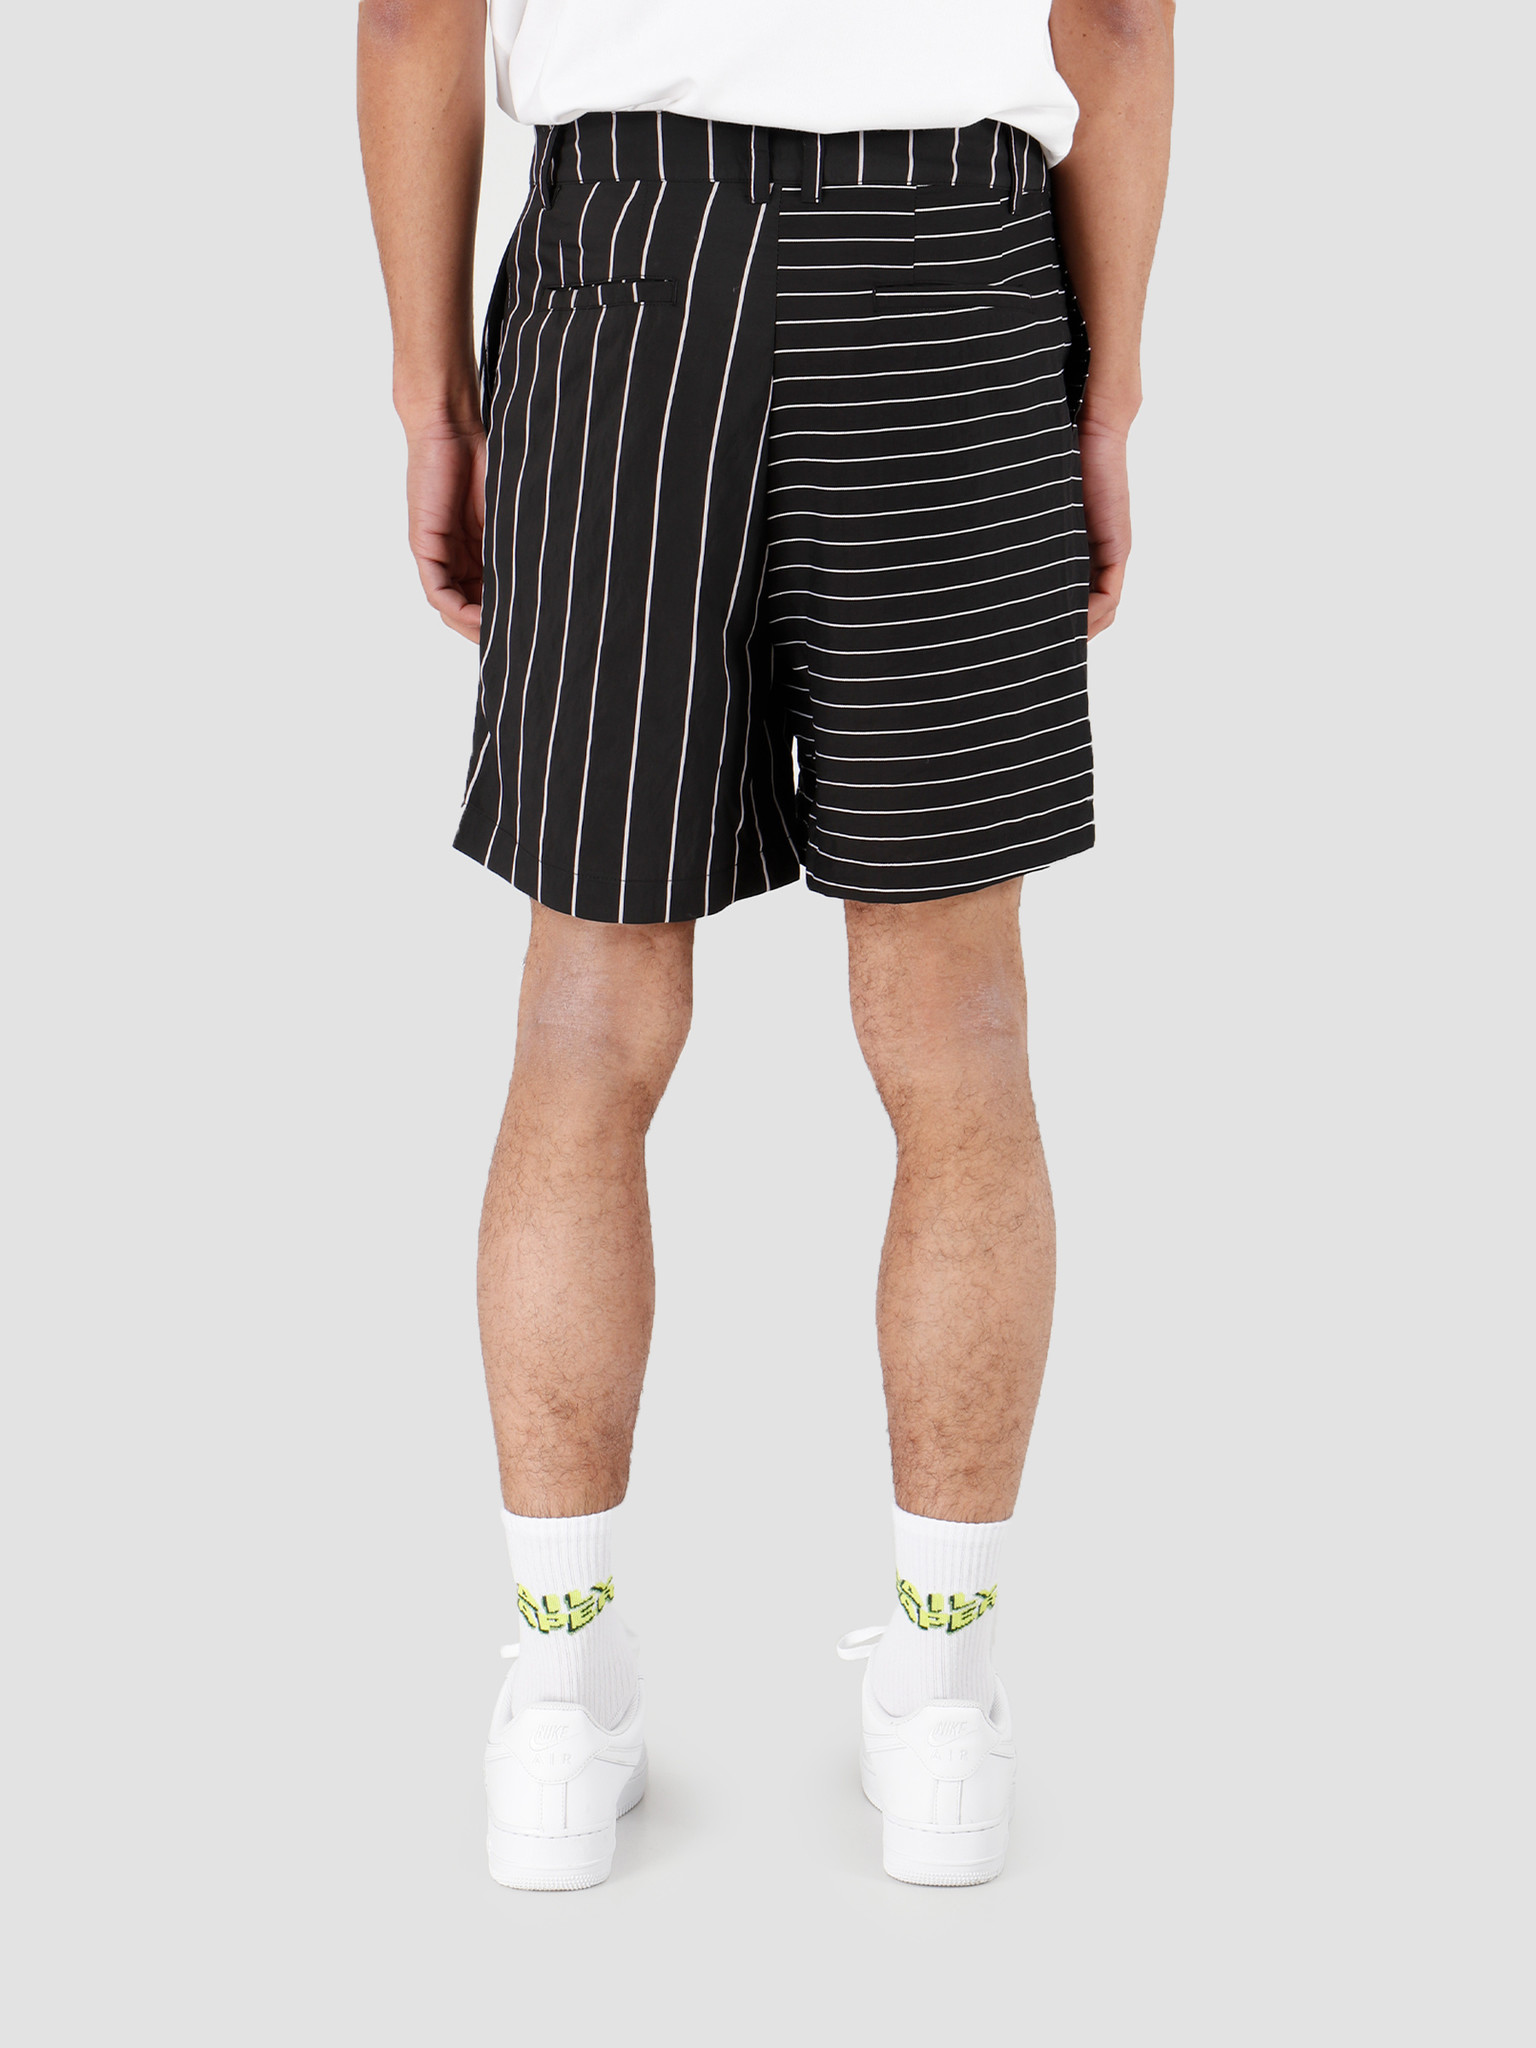 Daily Paper Daily Paper Hori 3 Short Black Stripe 20S1ST01-04